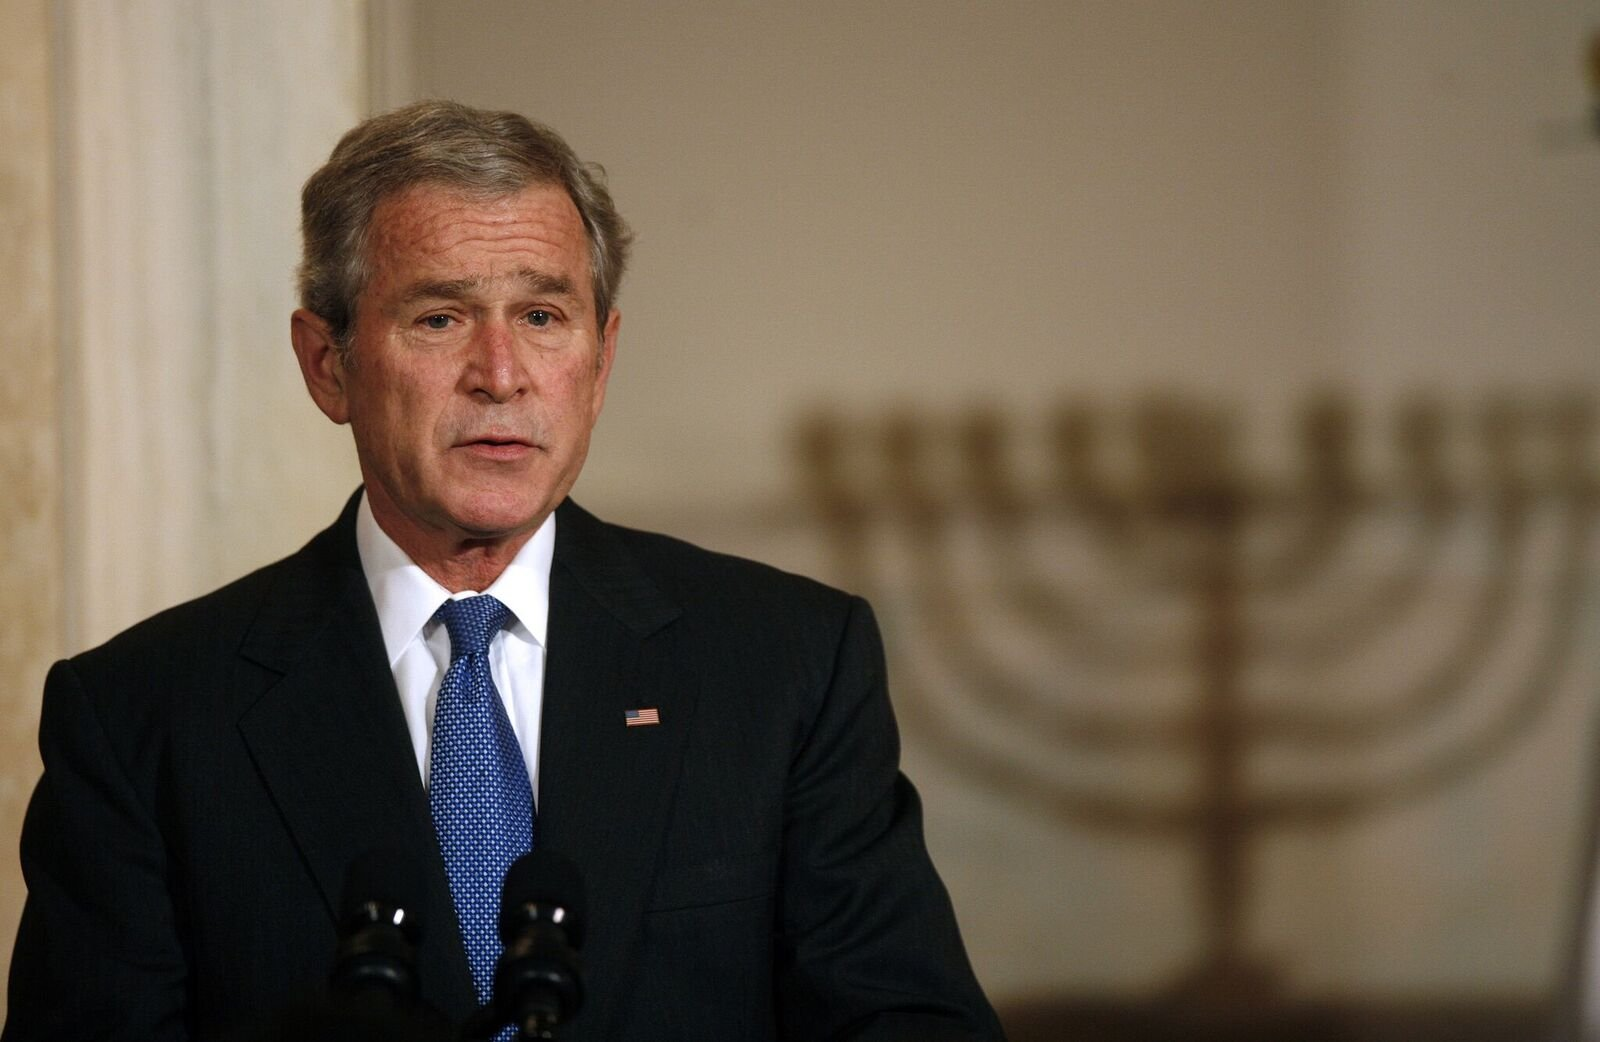 George W. Bush at a Hanukkah Reception in the Grand Foyer of the White House on December 15, 2008, in Washington, DC | Photo: Aude Guerrucci-Pool/Getty Images